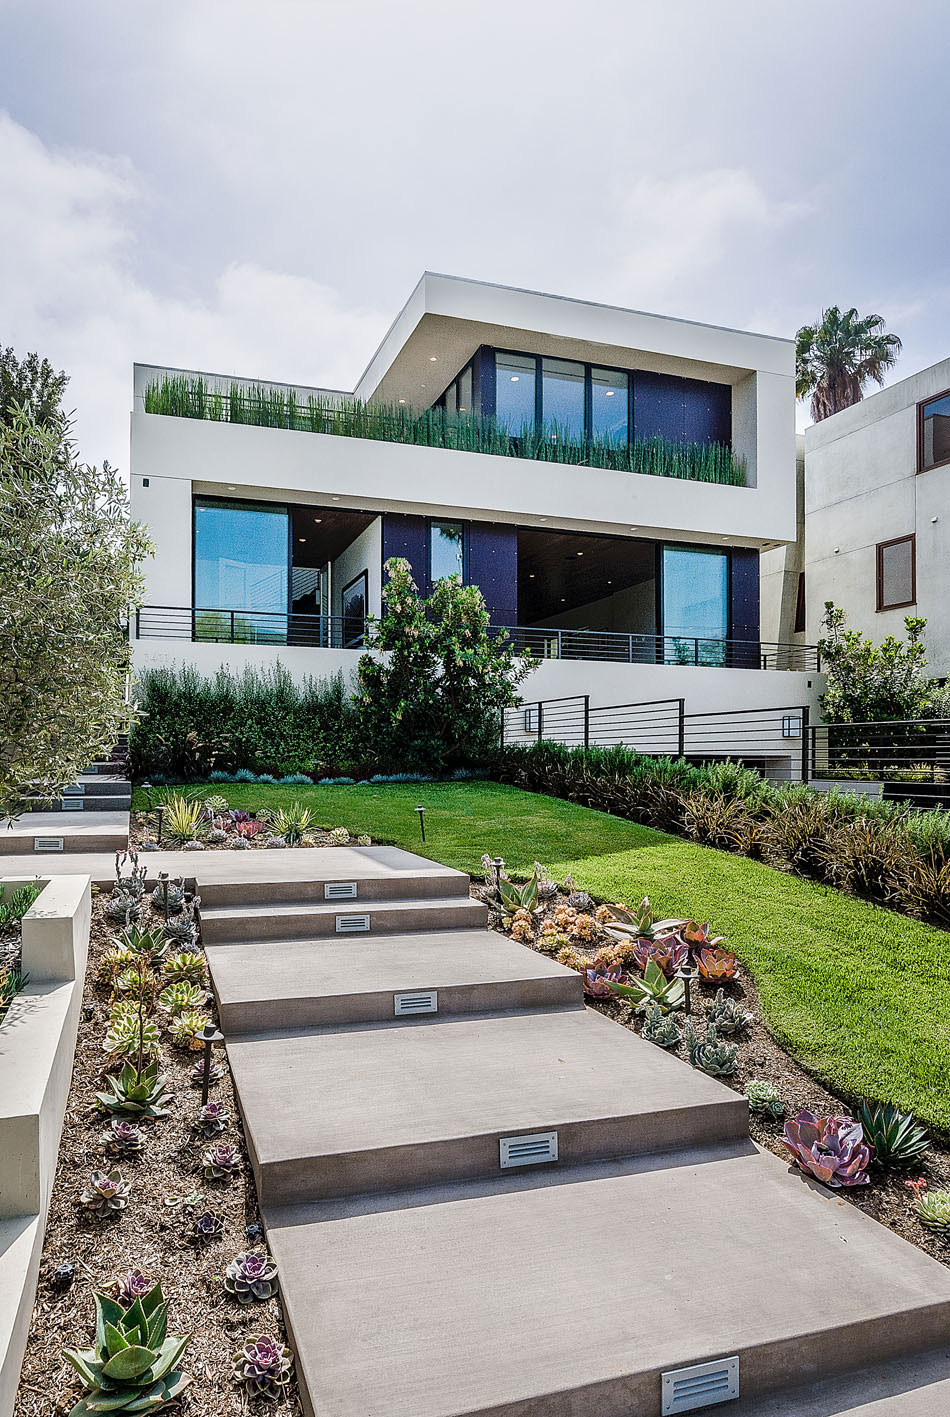 House with a very angular appearance and square windows 1 house with a very angular appearance and square windows